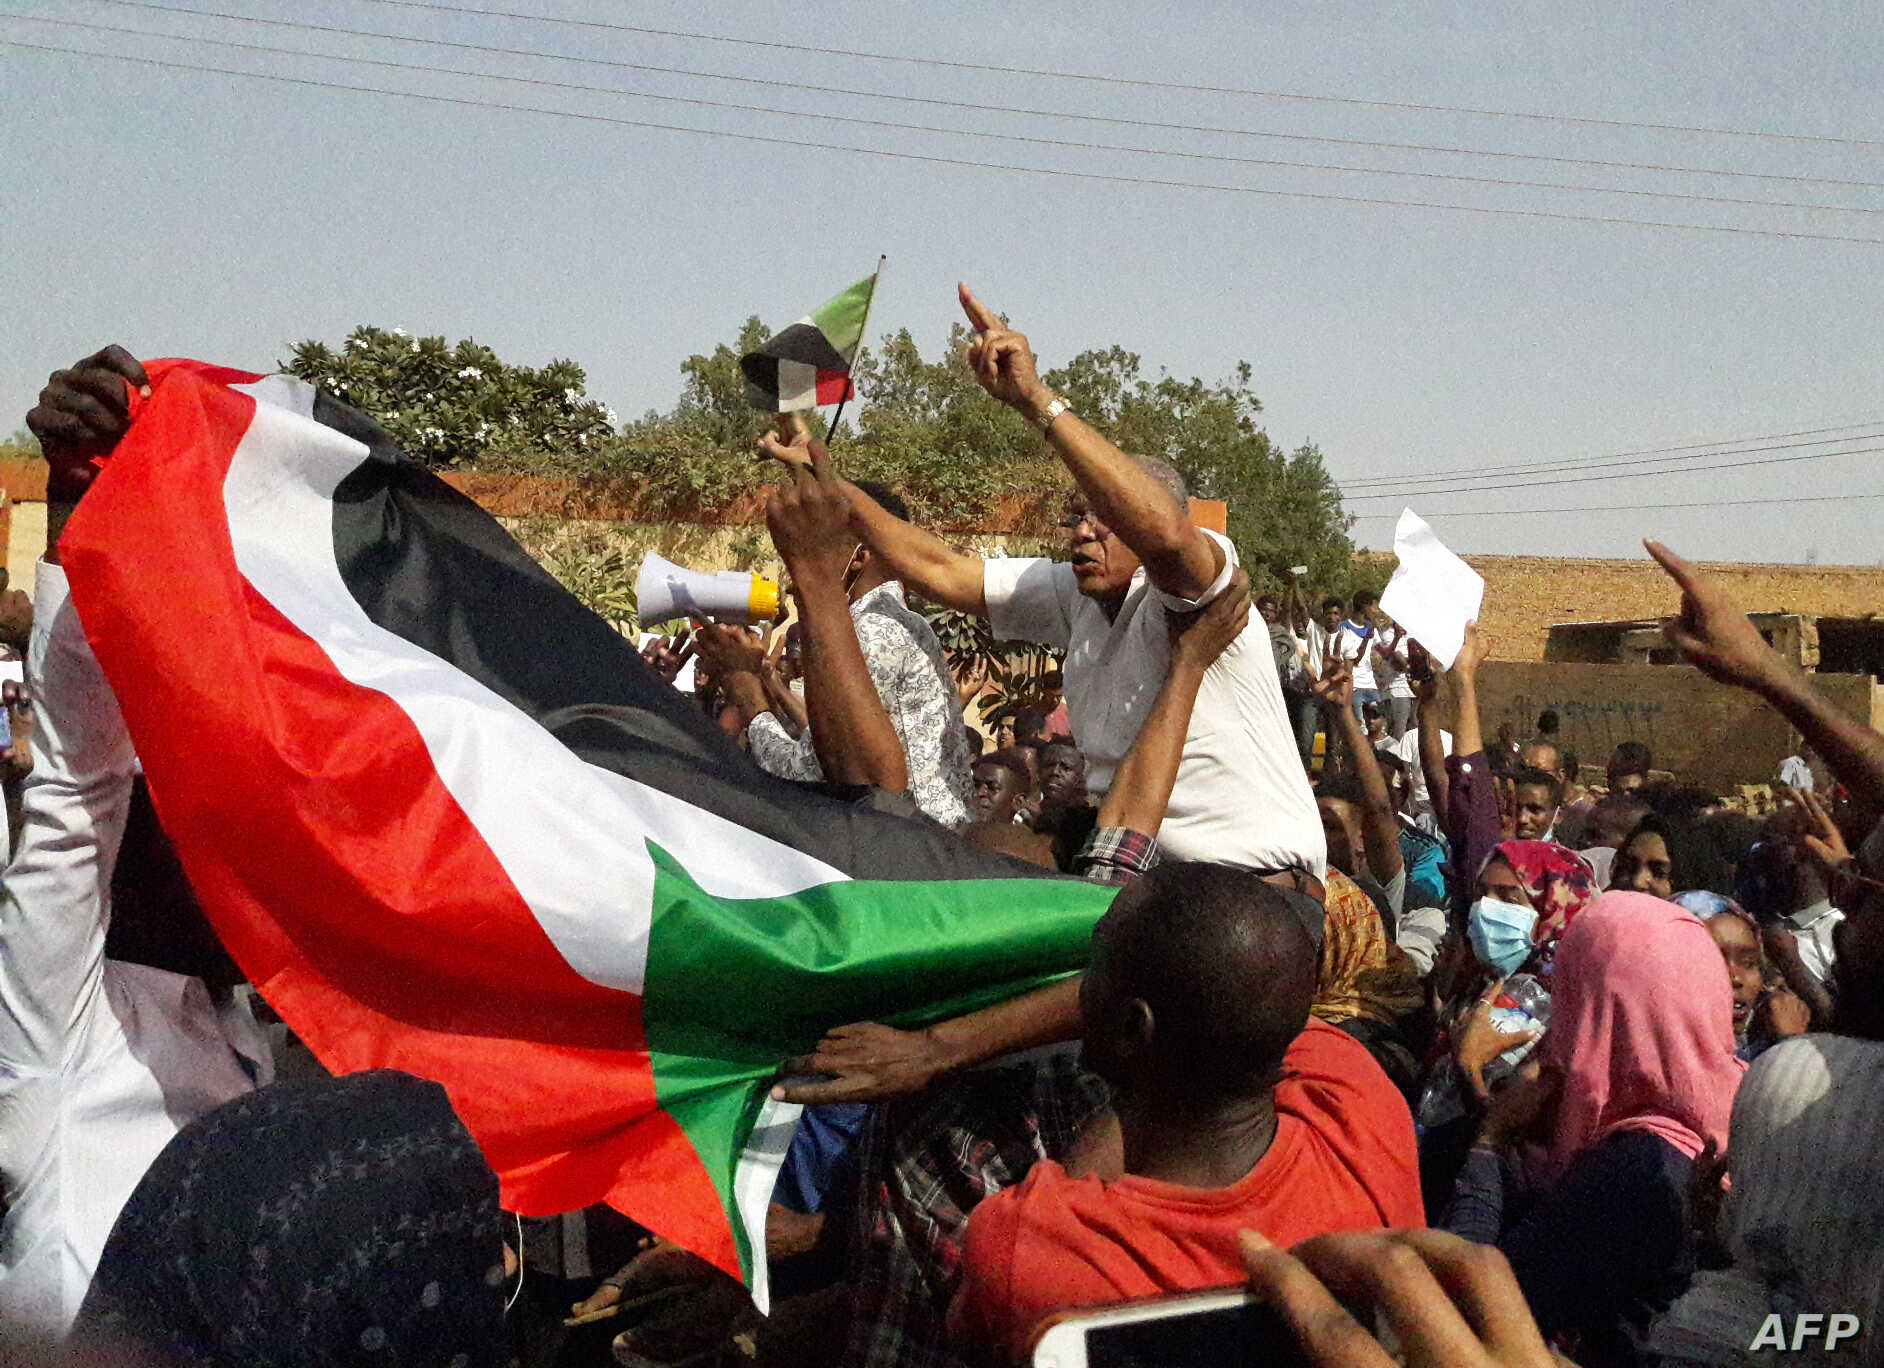 Sudanese protesters wave their national flag and chant slogans during an anti-government demonstration in the capital Khartoum's twin city of Omdurman on Jan. 31, 2019.